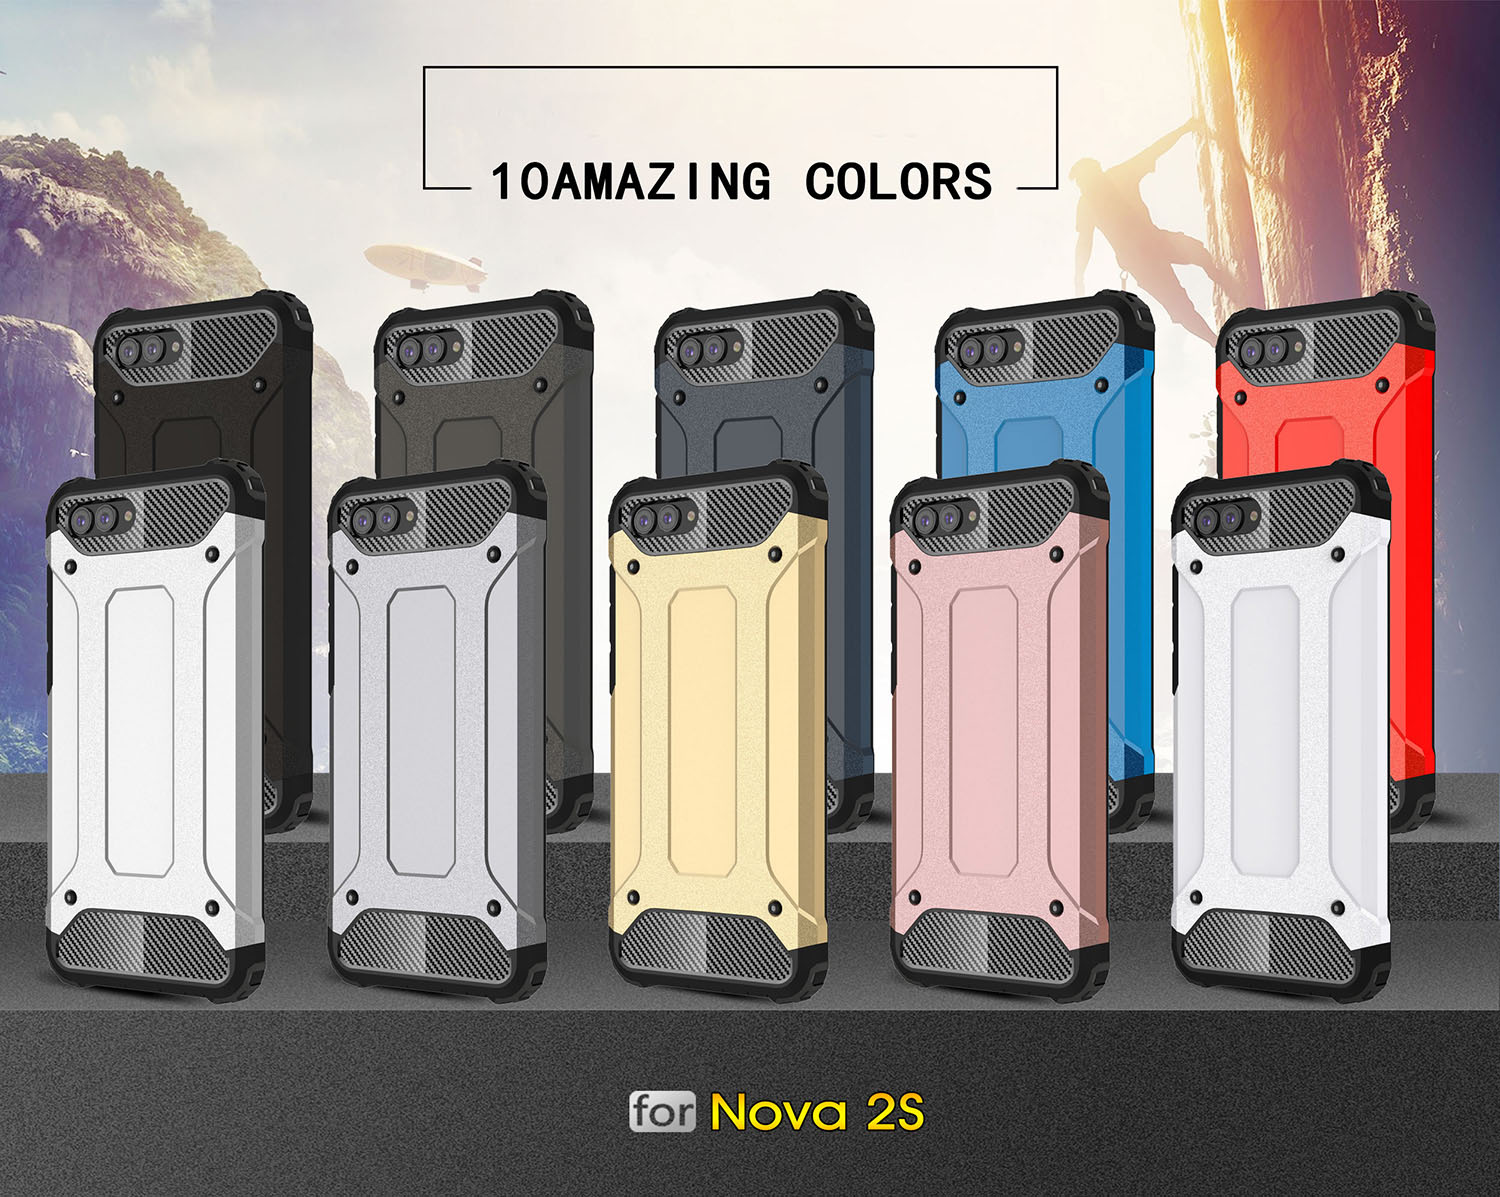 <font><b>Cases</b></font> For Huawei Huawei Nova 2s Nova2s HWI AL00 HWI TL00 <font><b>phone</b></font> Cover for Huawei <font><b>Hawaii</b></font> HWI-AL00 HWI-TL00 TPU PC <font><b>phone</b></font> housing